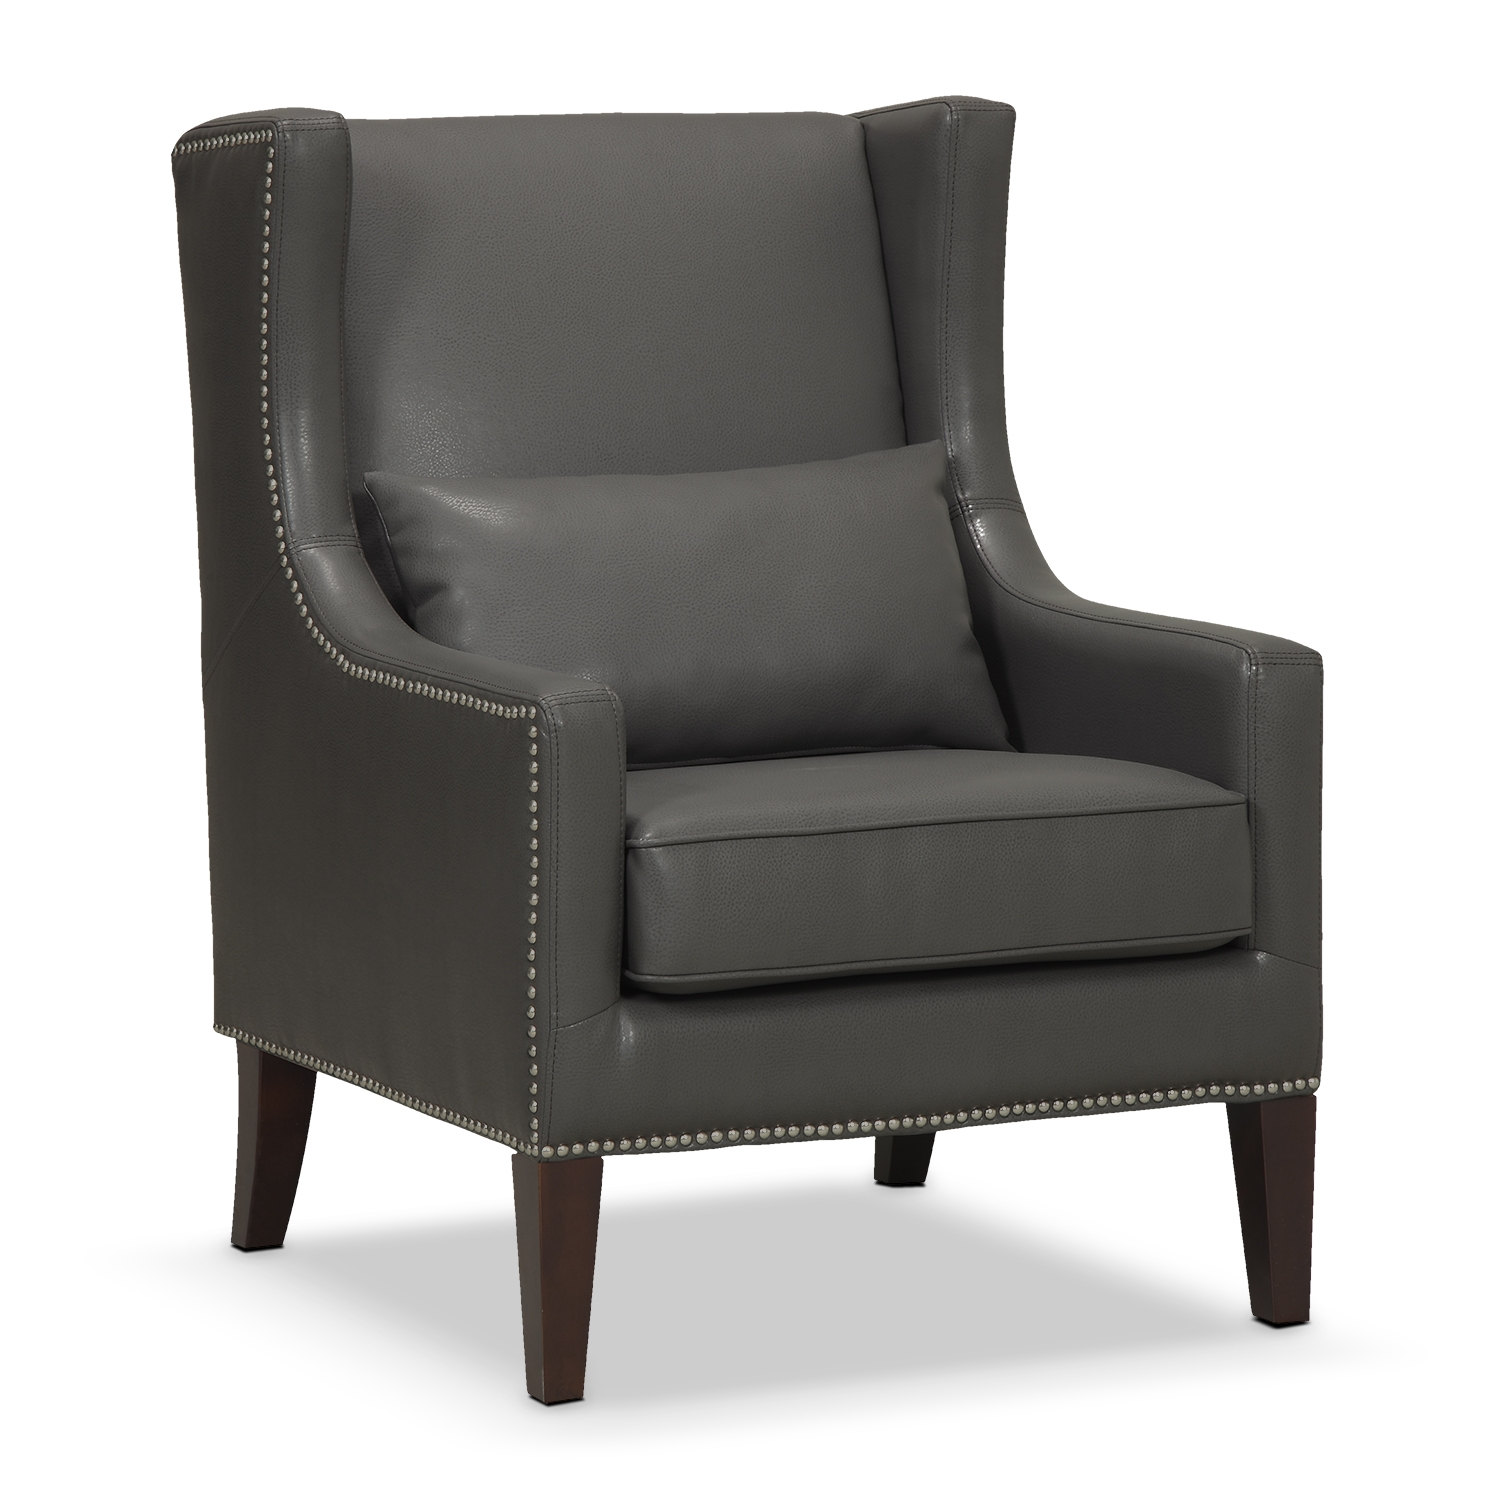 Cozy Accent Chair for Home Furniture Ideas: Great Accent Chair For Home Furniture Ideas With Accent Chairs With Arms And Accent Chairs For Living Room